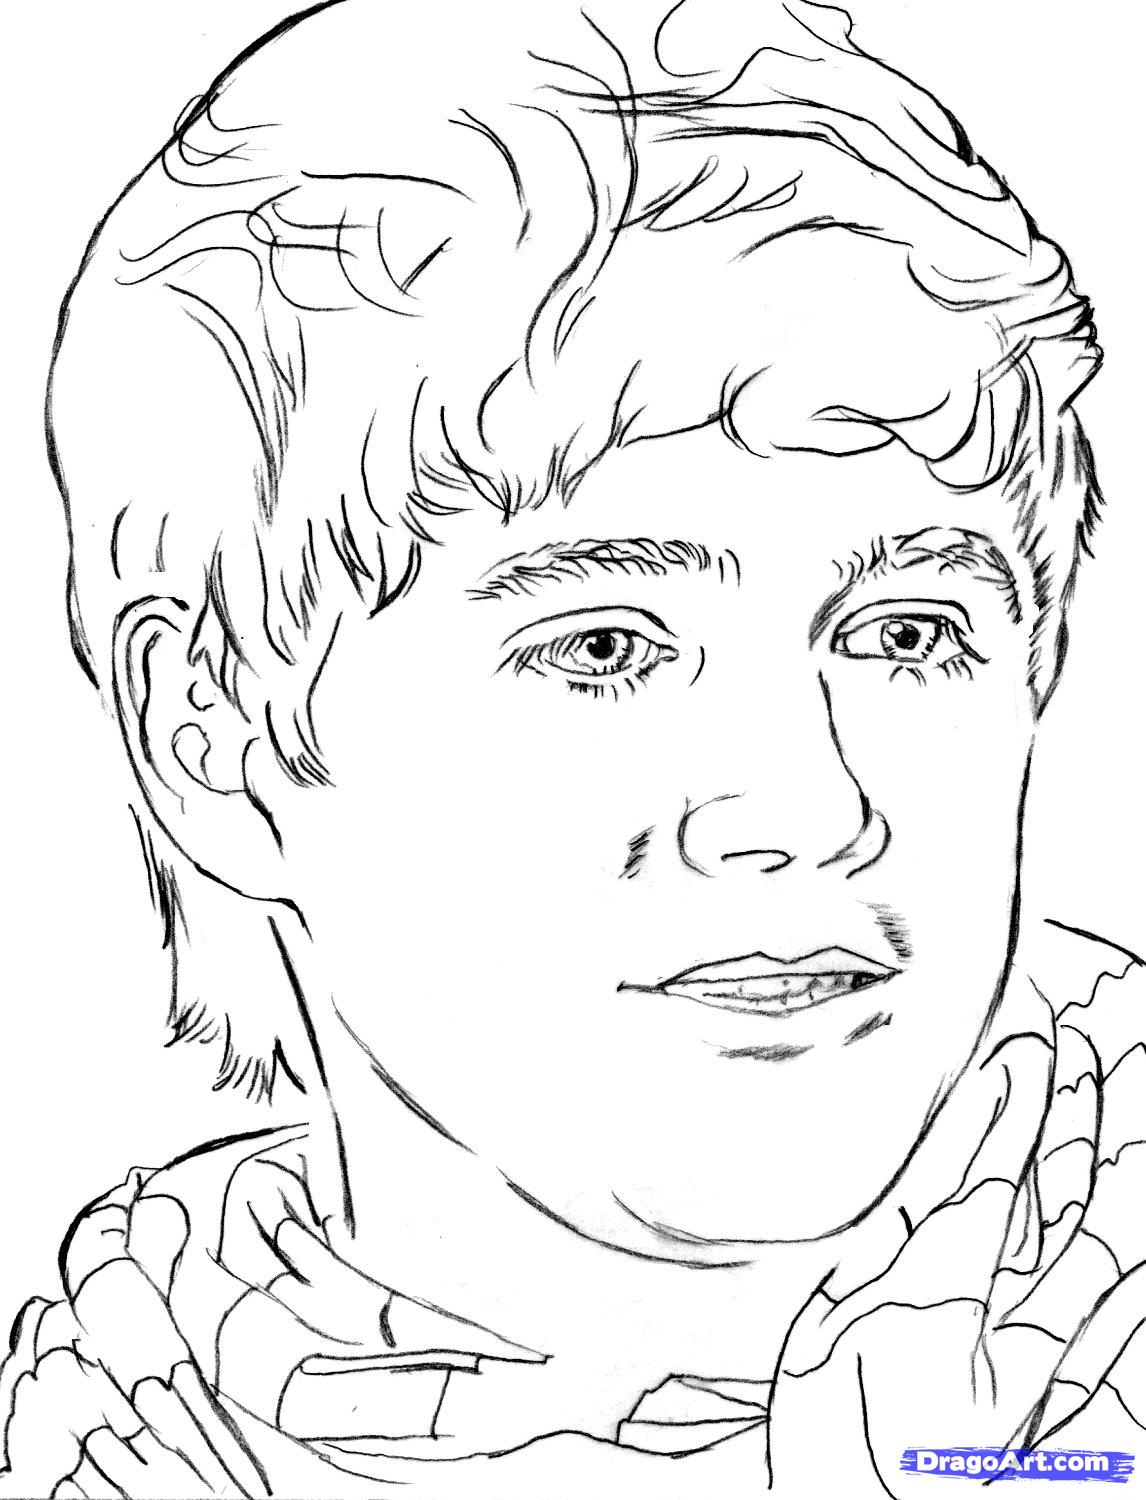 1146x1500 Coloring Pages One Direction Free And Printable Picturesque